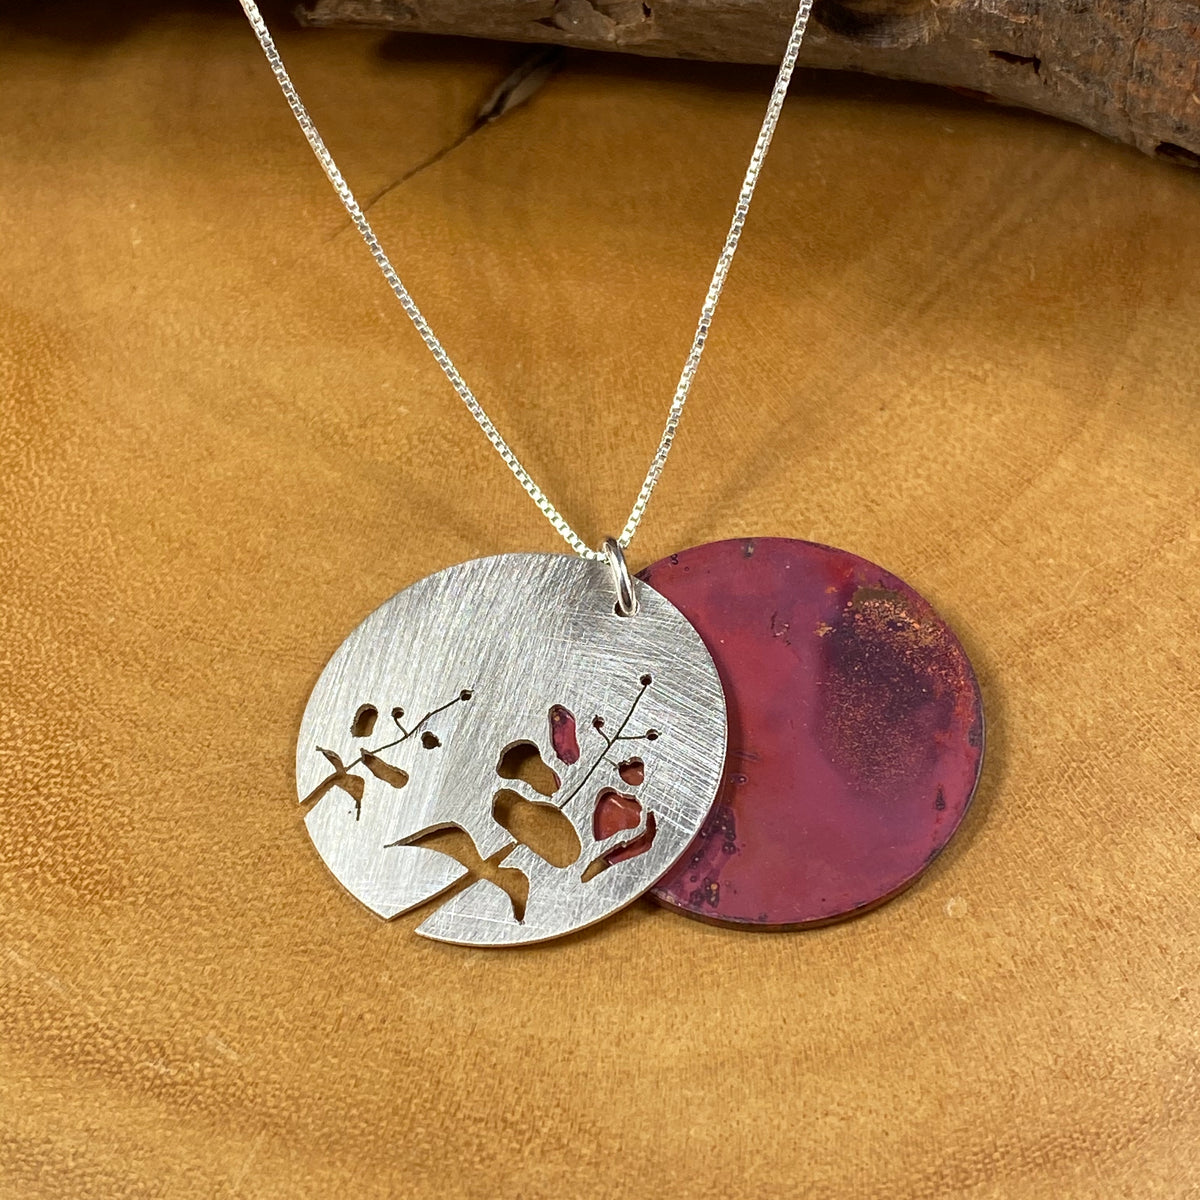 Fireweed Mixed Metals Pendant - Flame Red - Heart of the Home PA